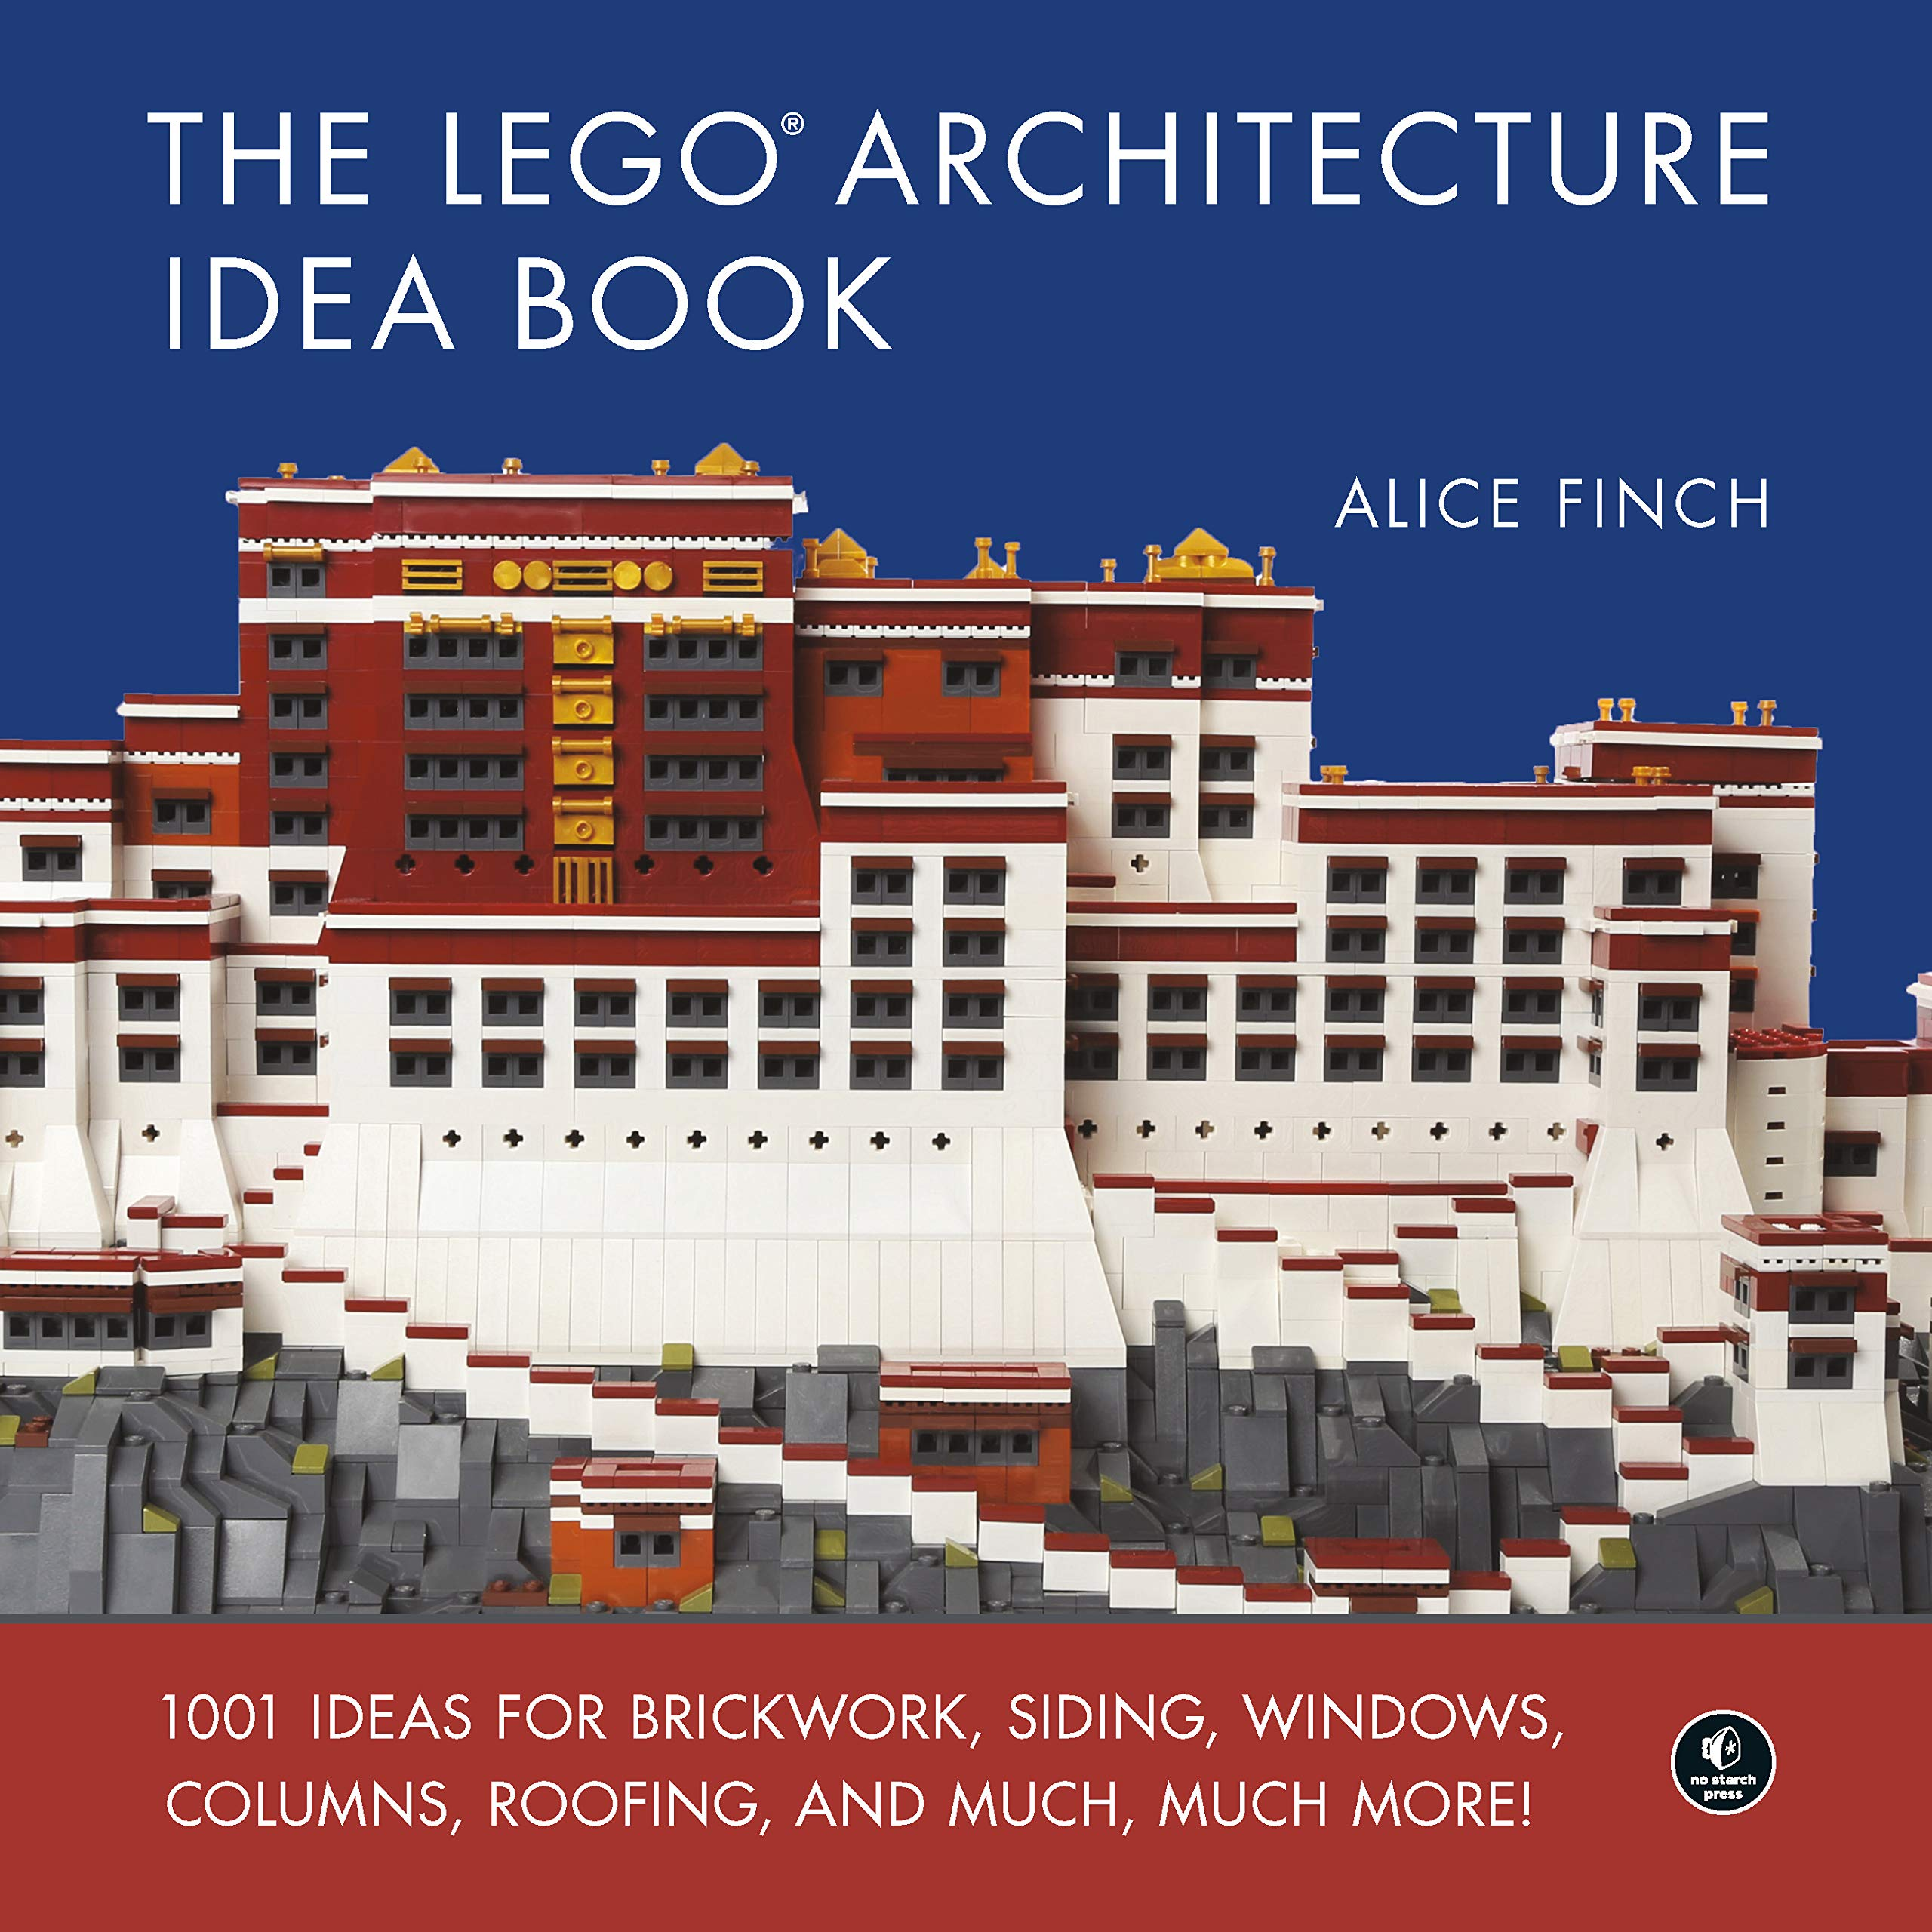 unique-book-gifts-for-architect-student-or-professional-lego-ideas